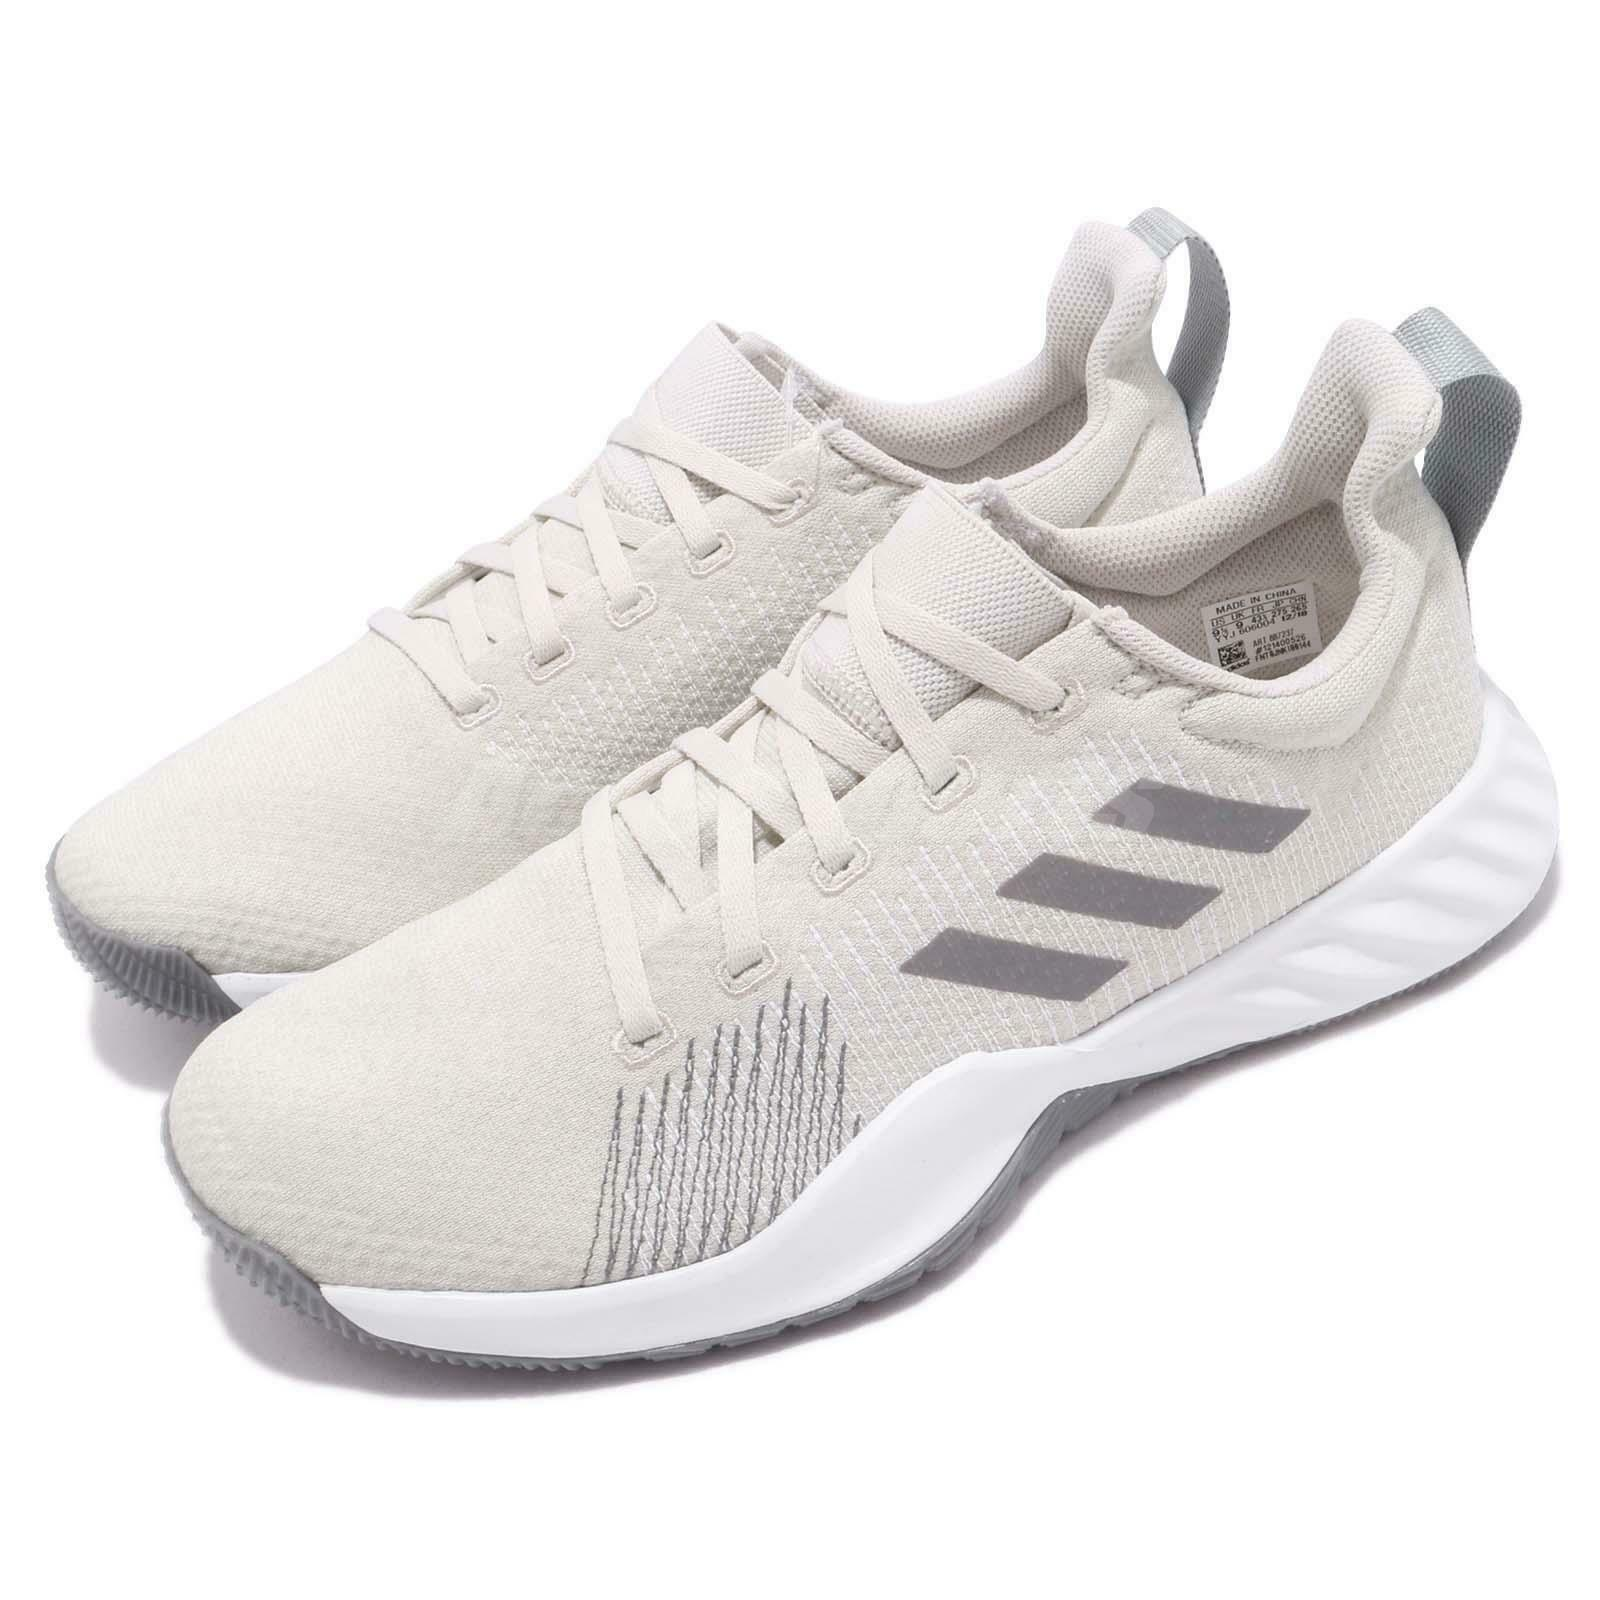 Adidas Solar LT Trainer M blancoo gris Mens Cross Cross Cross Training   Running zapatos BB7237 81a8dc